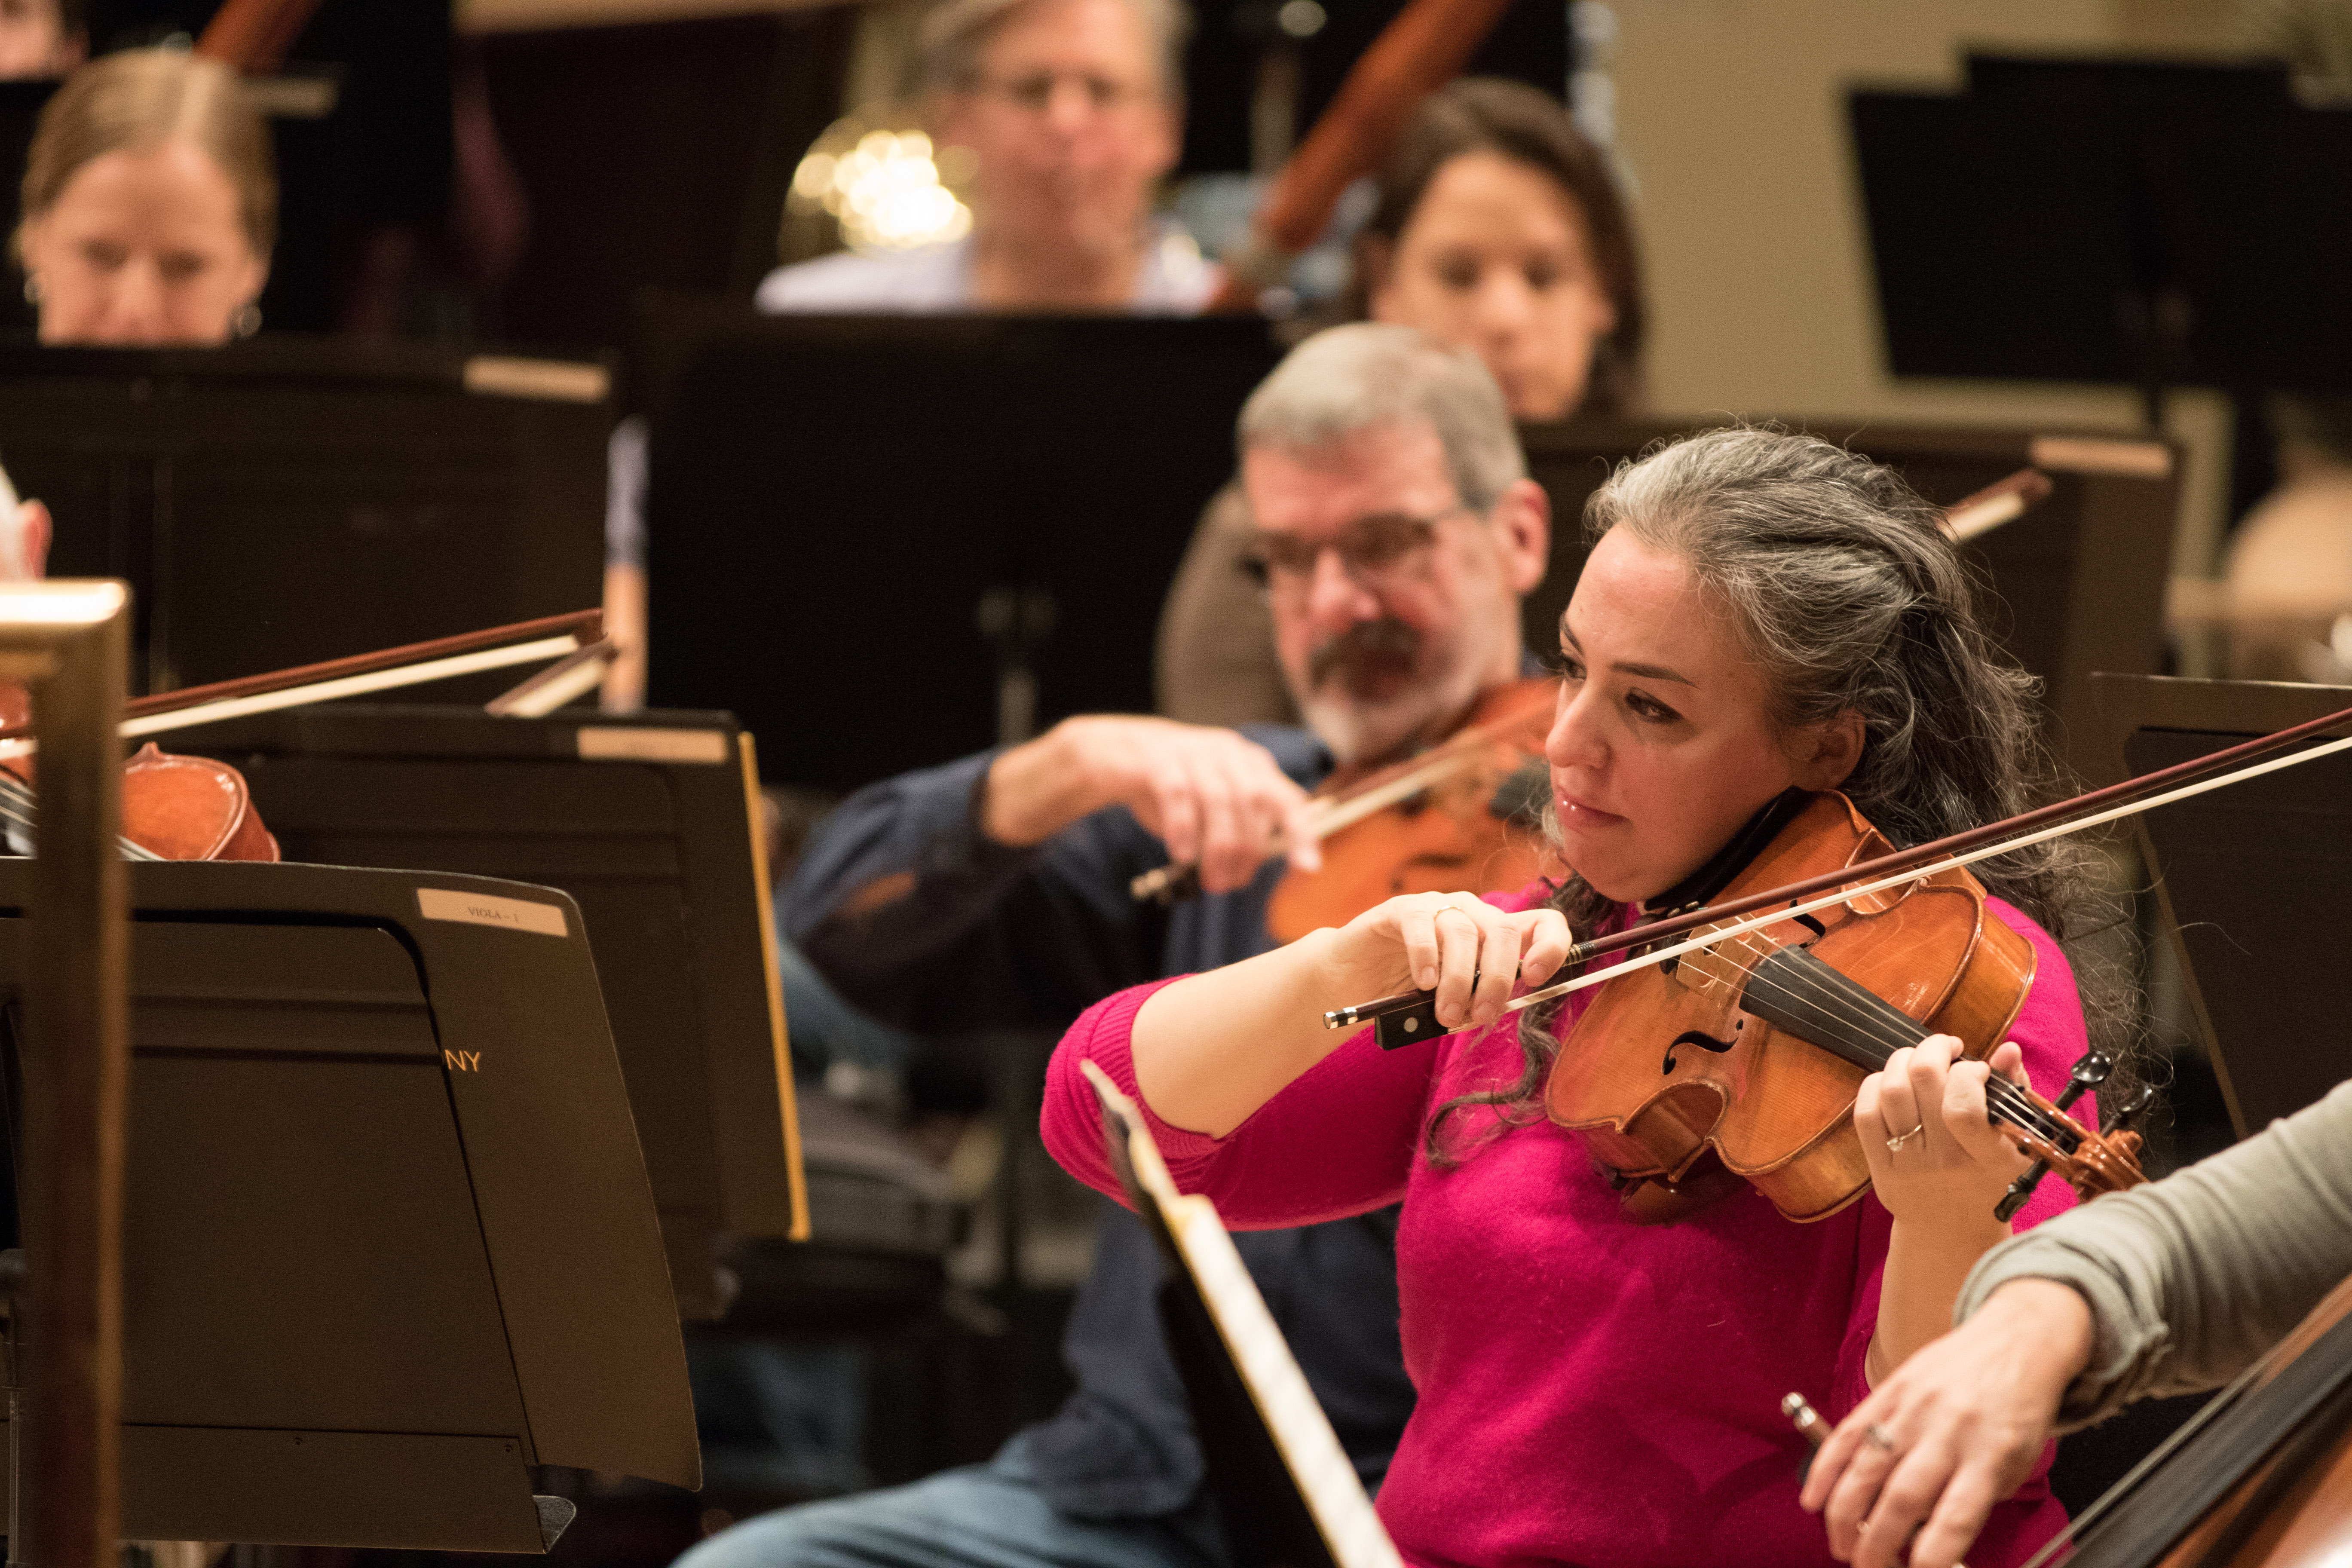 Beth Guterman Chu rehearsing with the orchestra. Photo by Dilip Vishwanat.